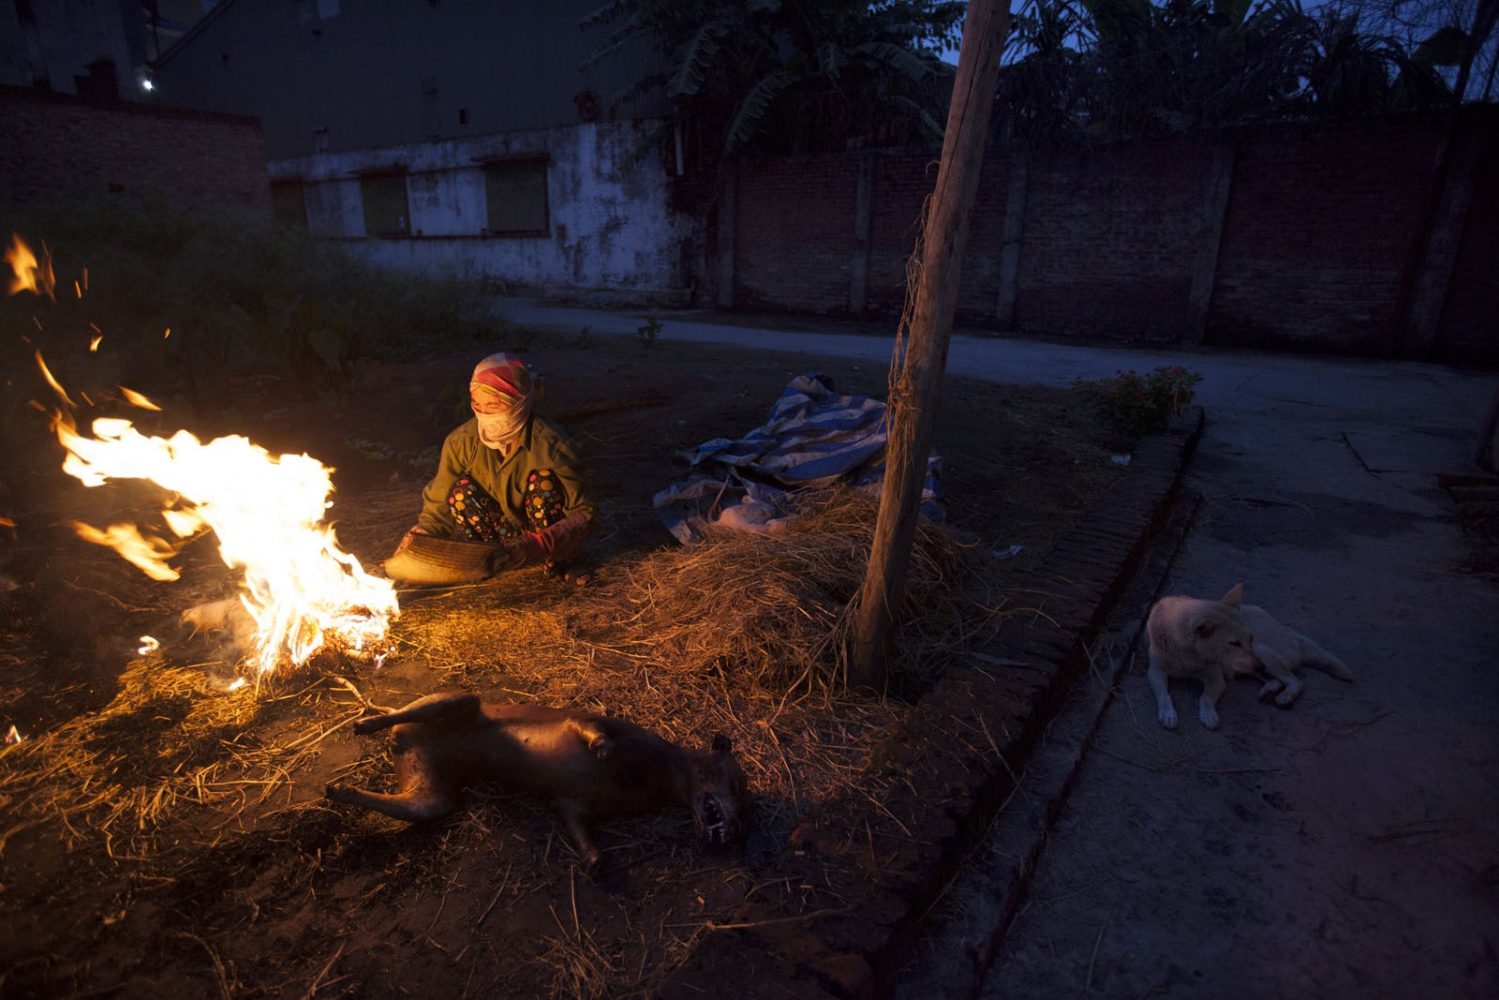 At a slaughter house in the middle of the night, the dogs are killed and prepared for the restaurants as the family's pet dog sits by. Hanoi, Vietnam